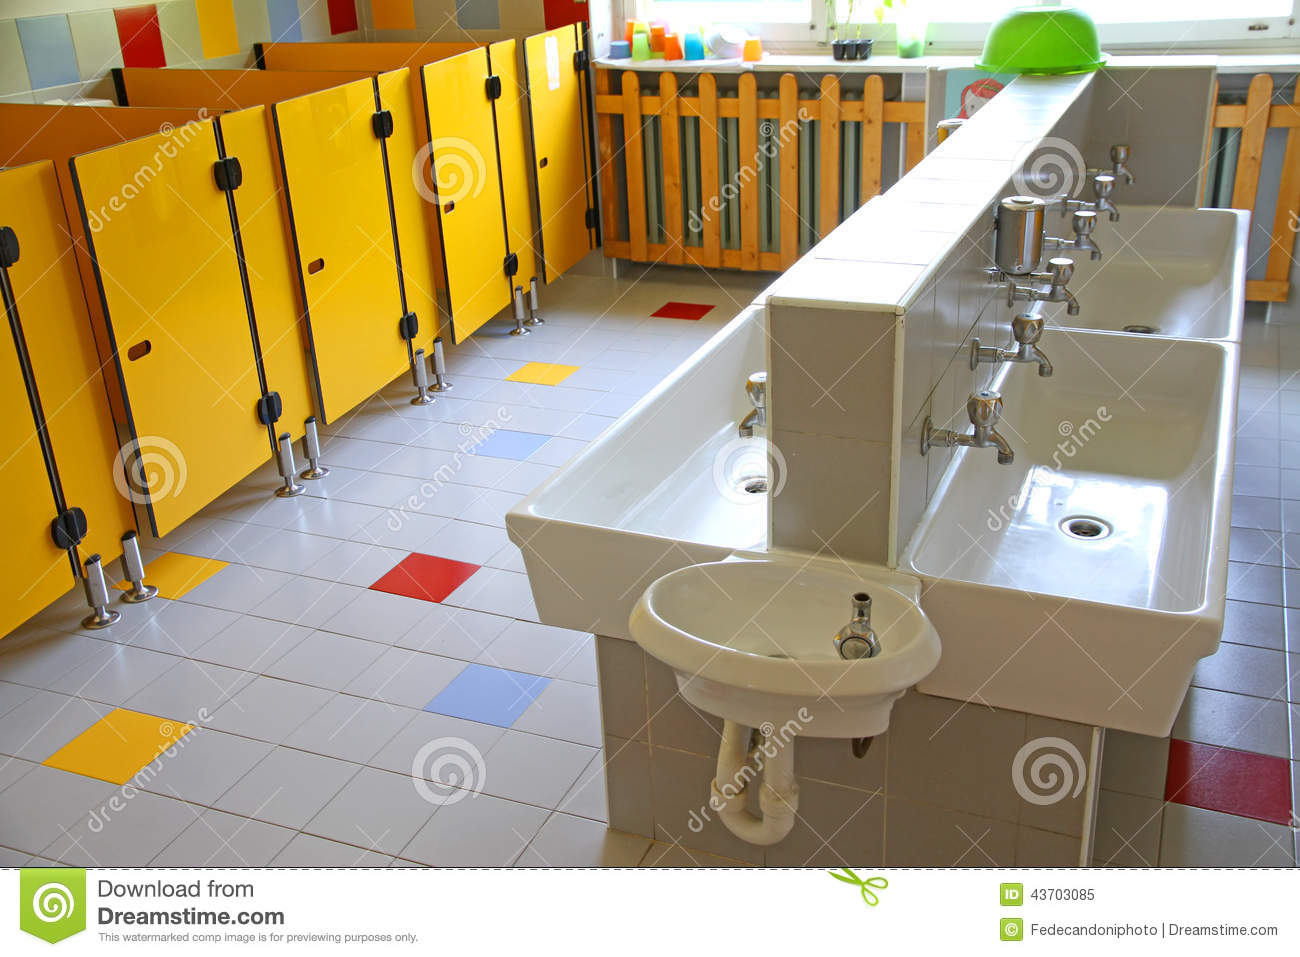 Baños Modernos Ninos:School Bathroom Sinks